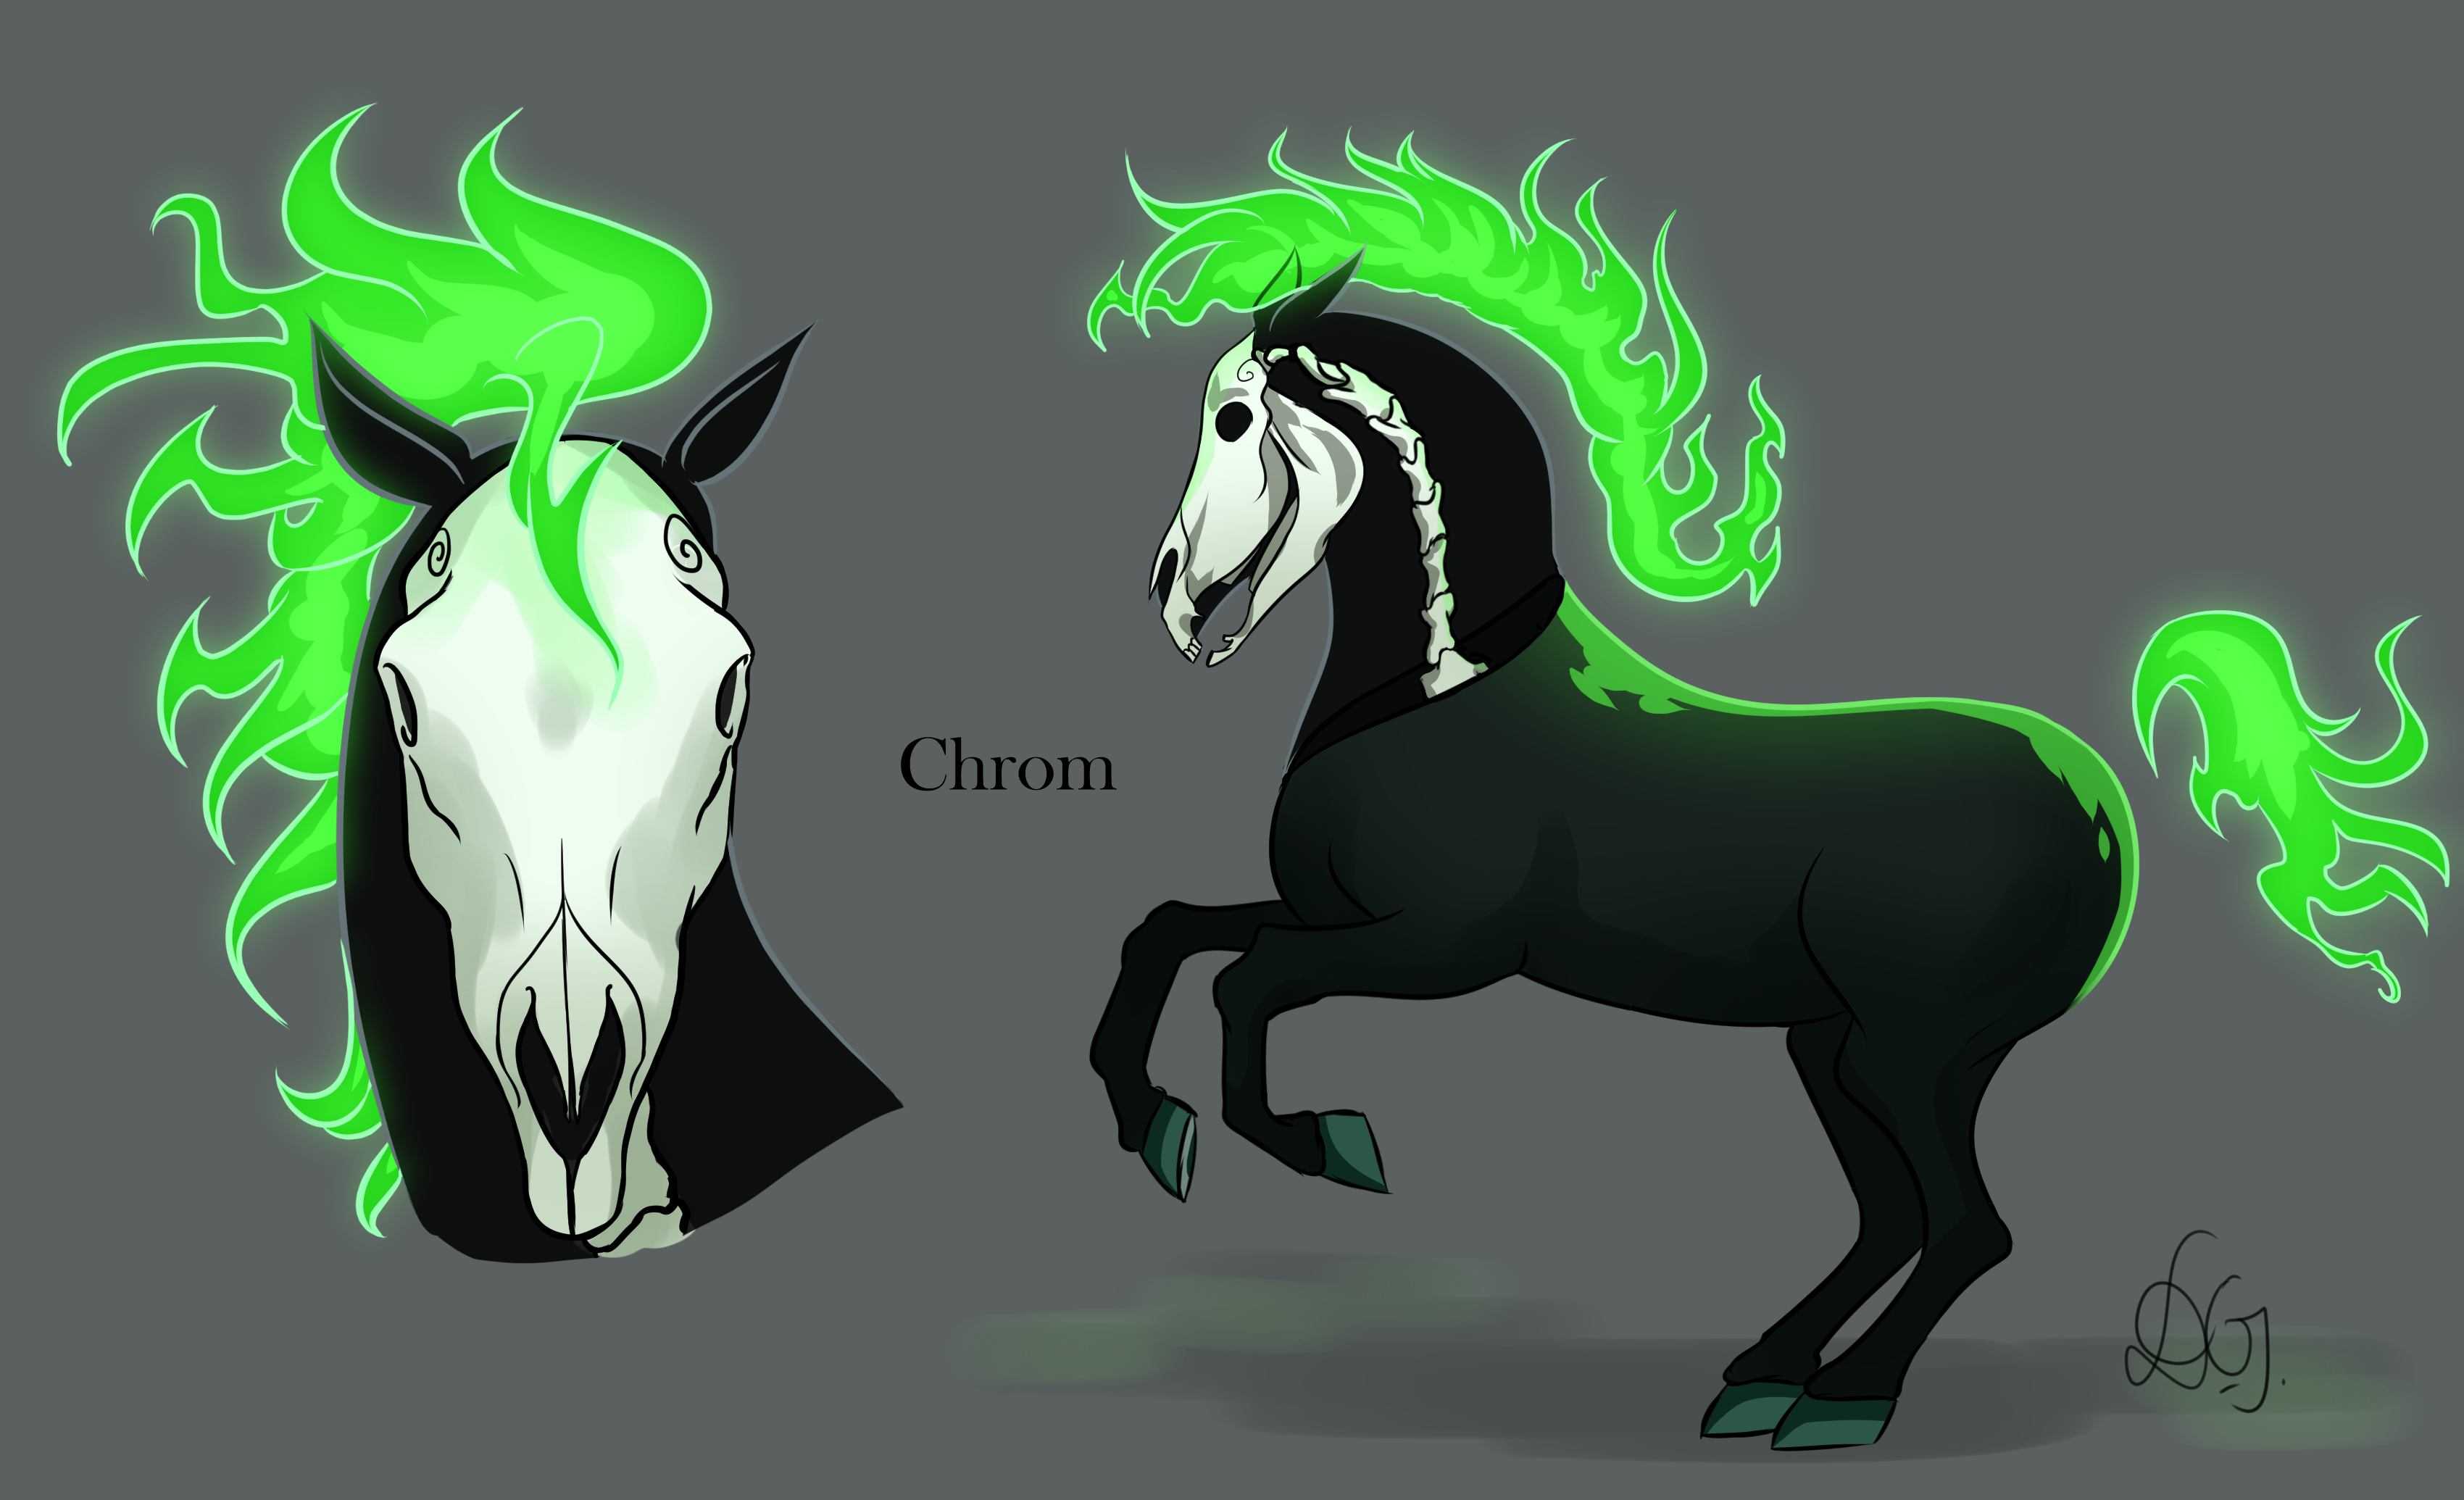 Groves_Deborah_Final_Chrom